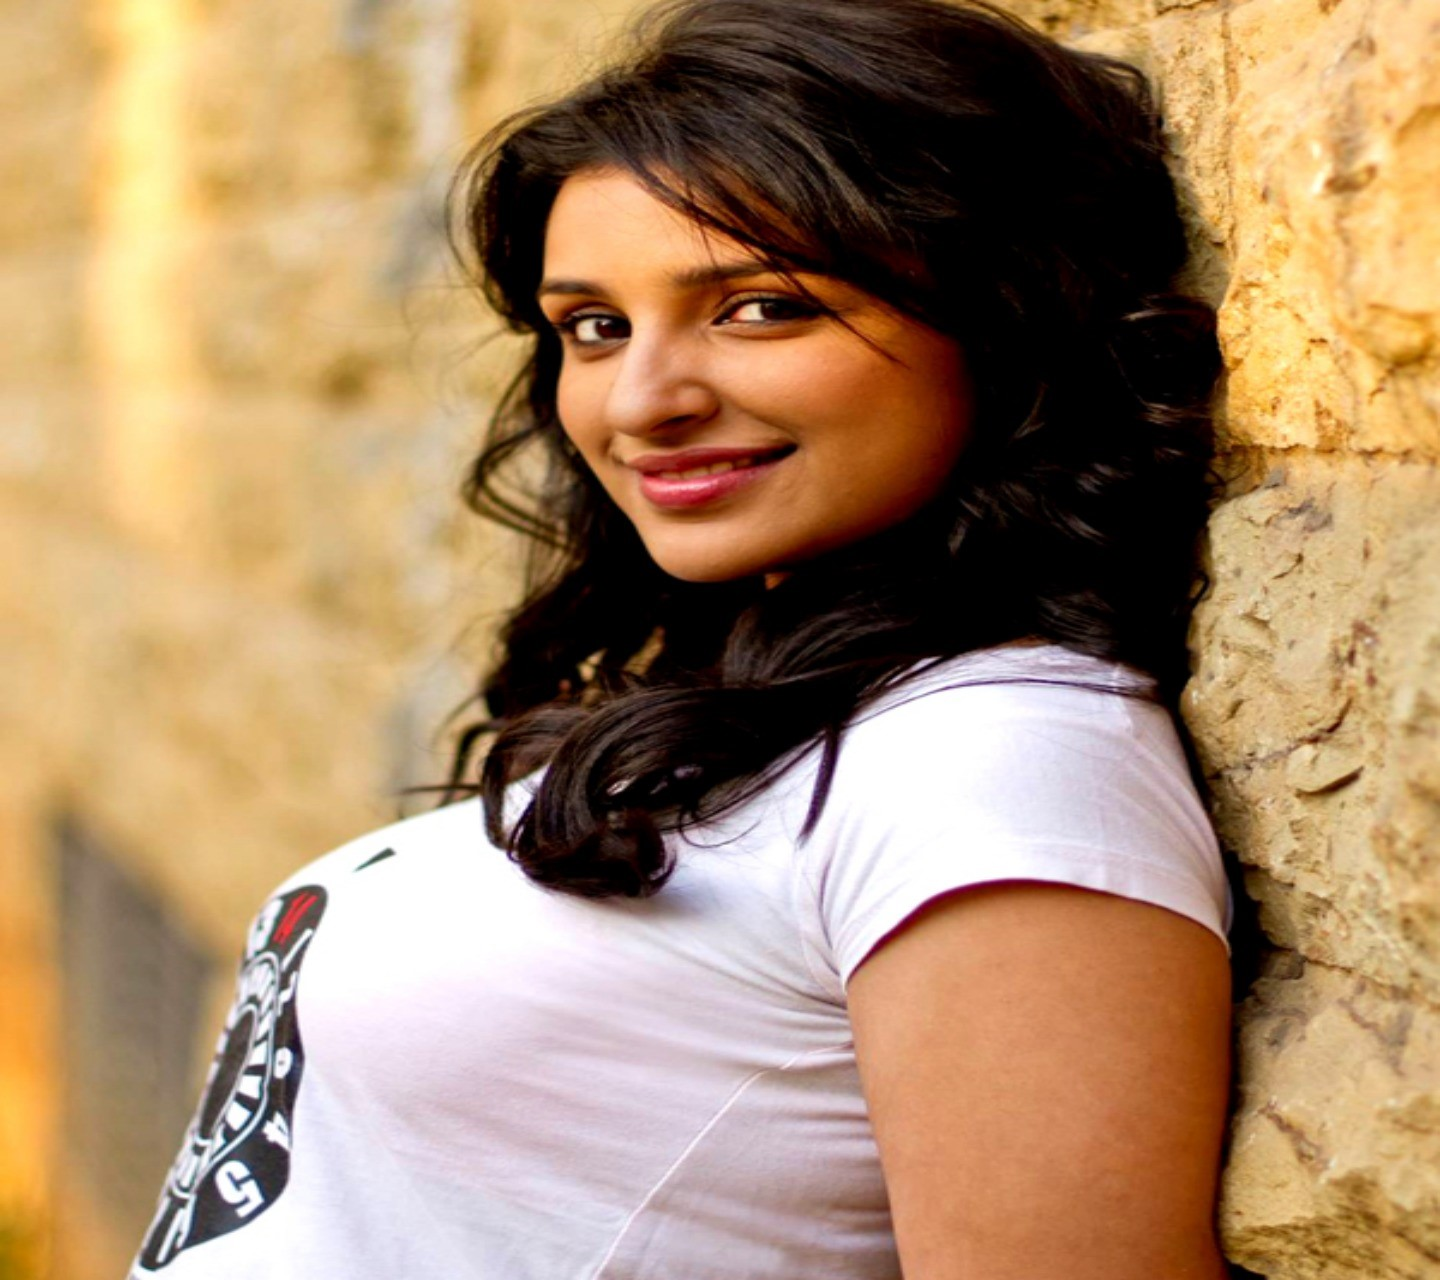 Parineeti Chopra Hd wallpaper 8857249